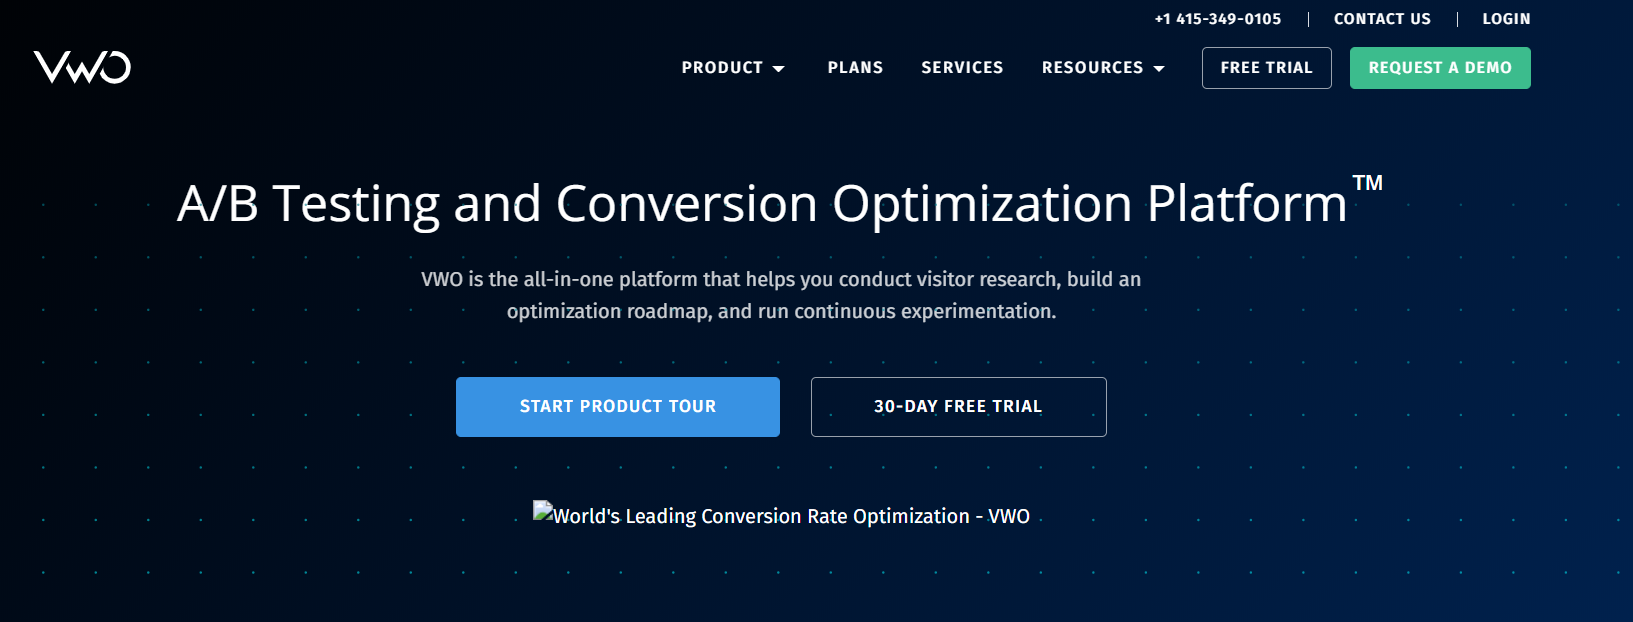 Best Conversion Rate Optimization Tools- VWO